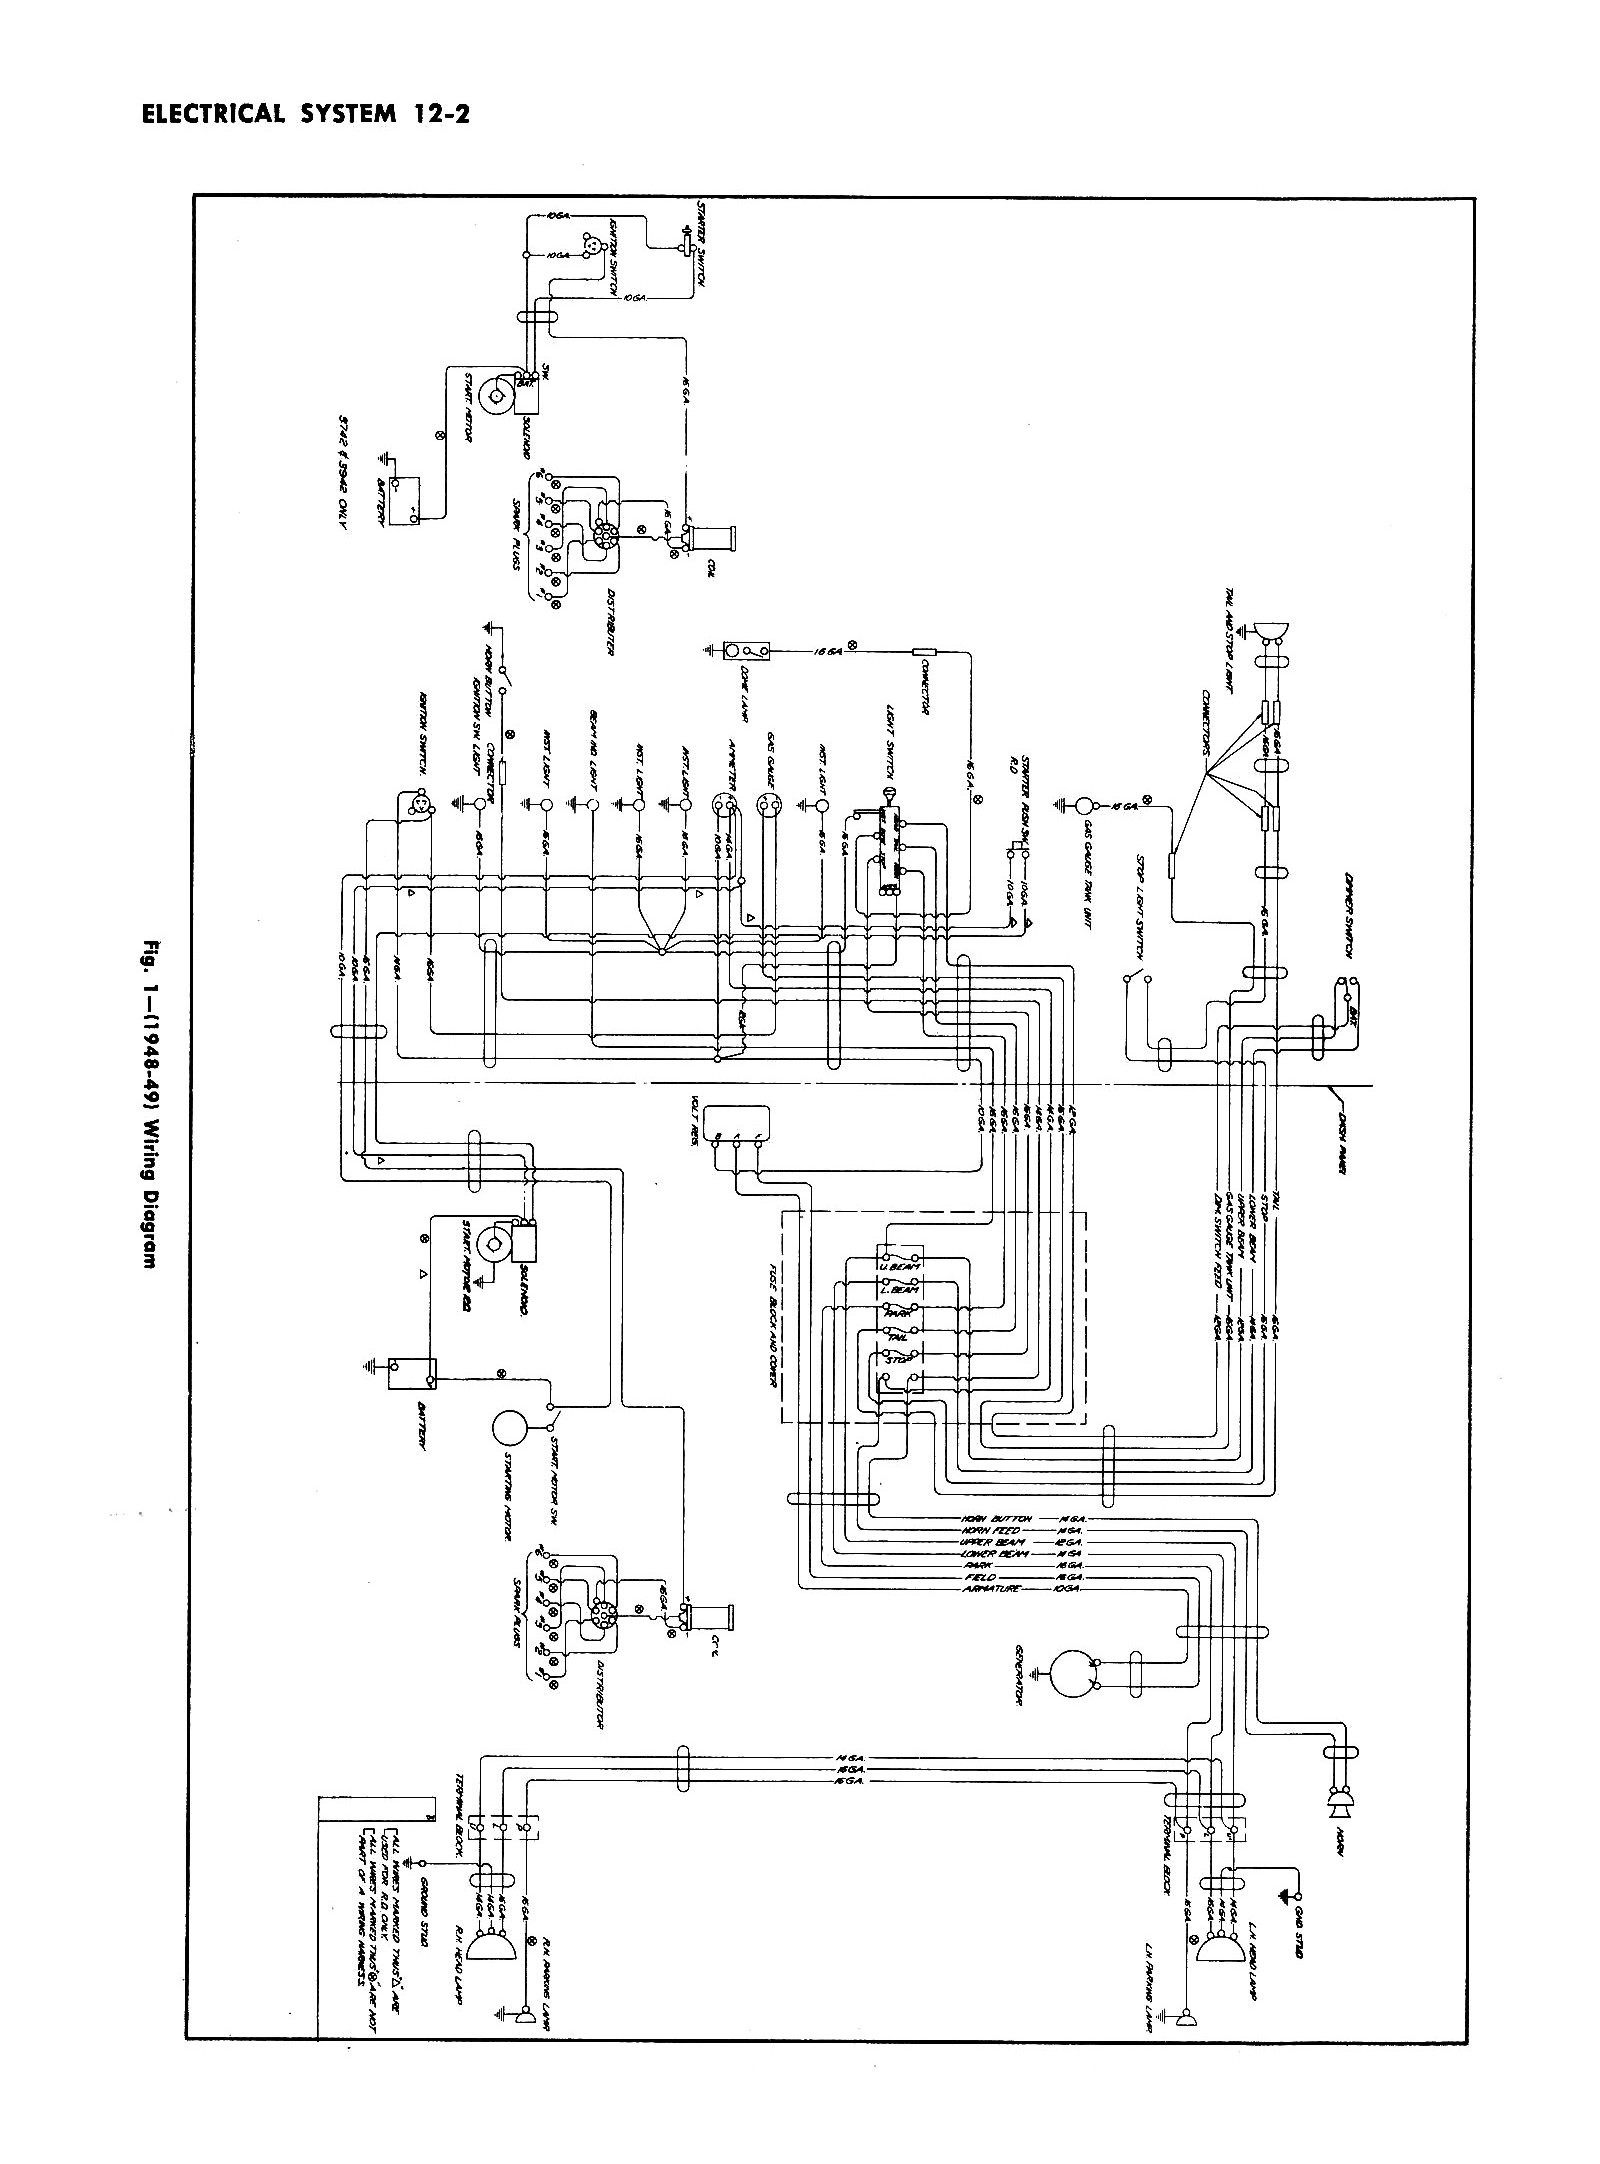 1947 Chevy Headlight Switch Wiring Diagram Data 1992 Toyota Pickup Diagrams 1955